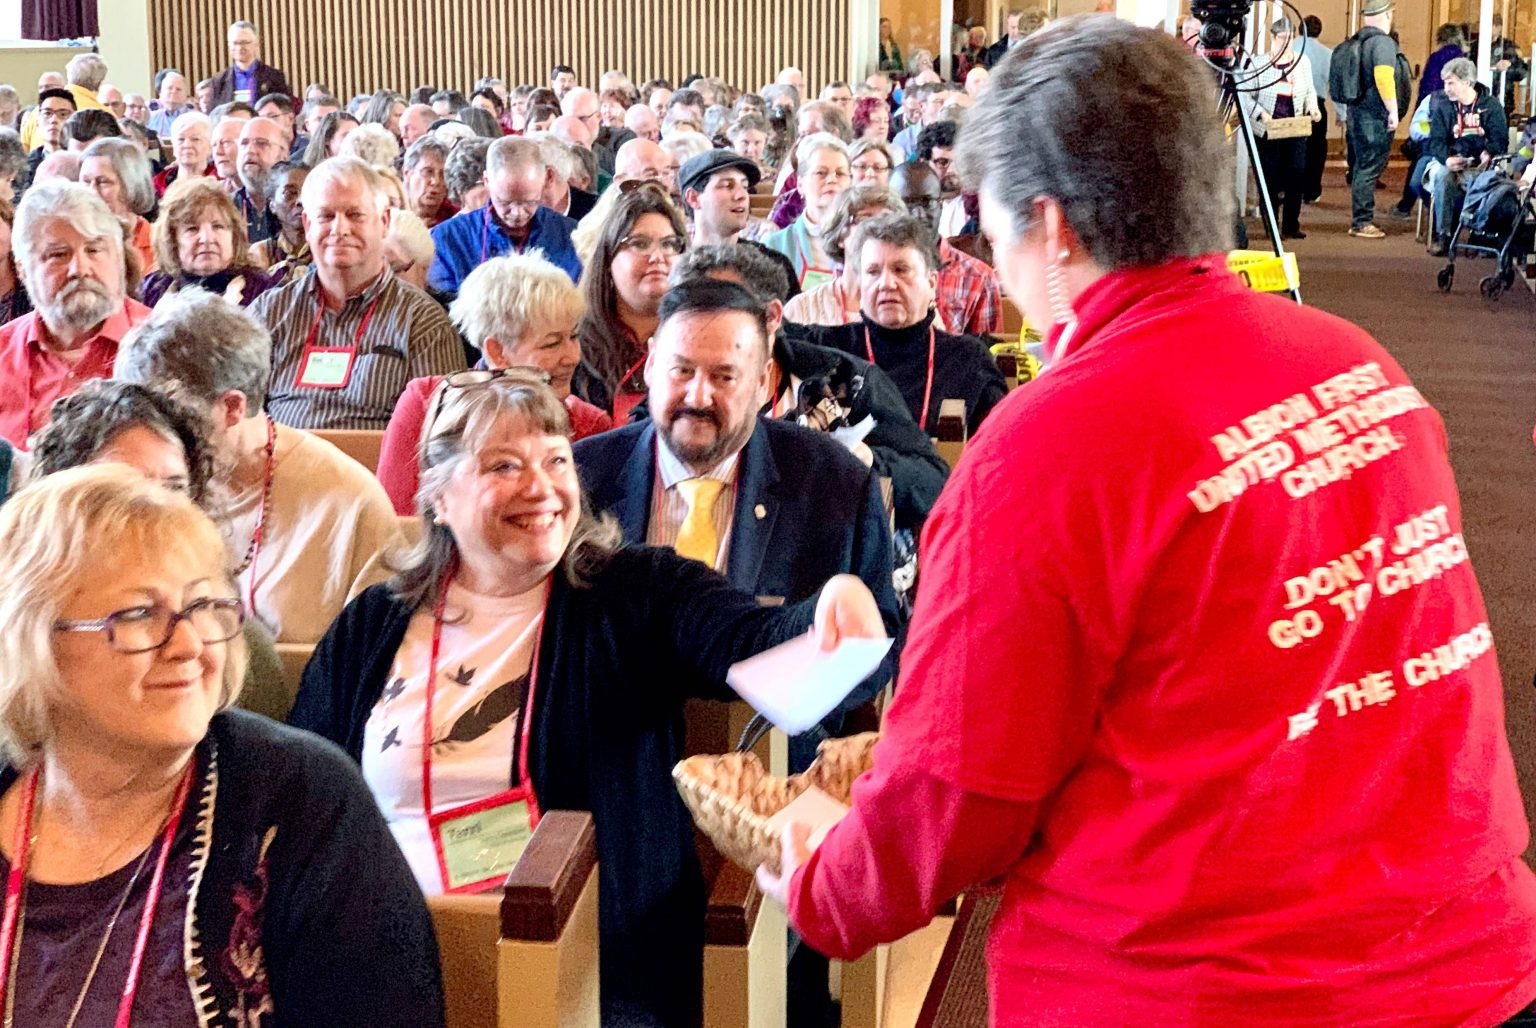 Michigan Methodists Advance Protocol to General Conference